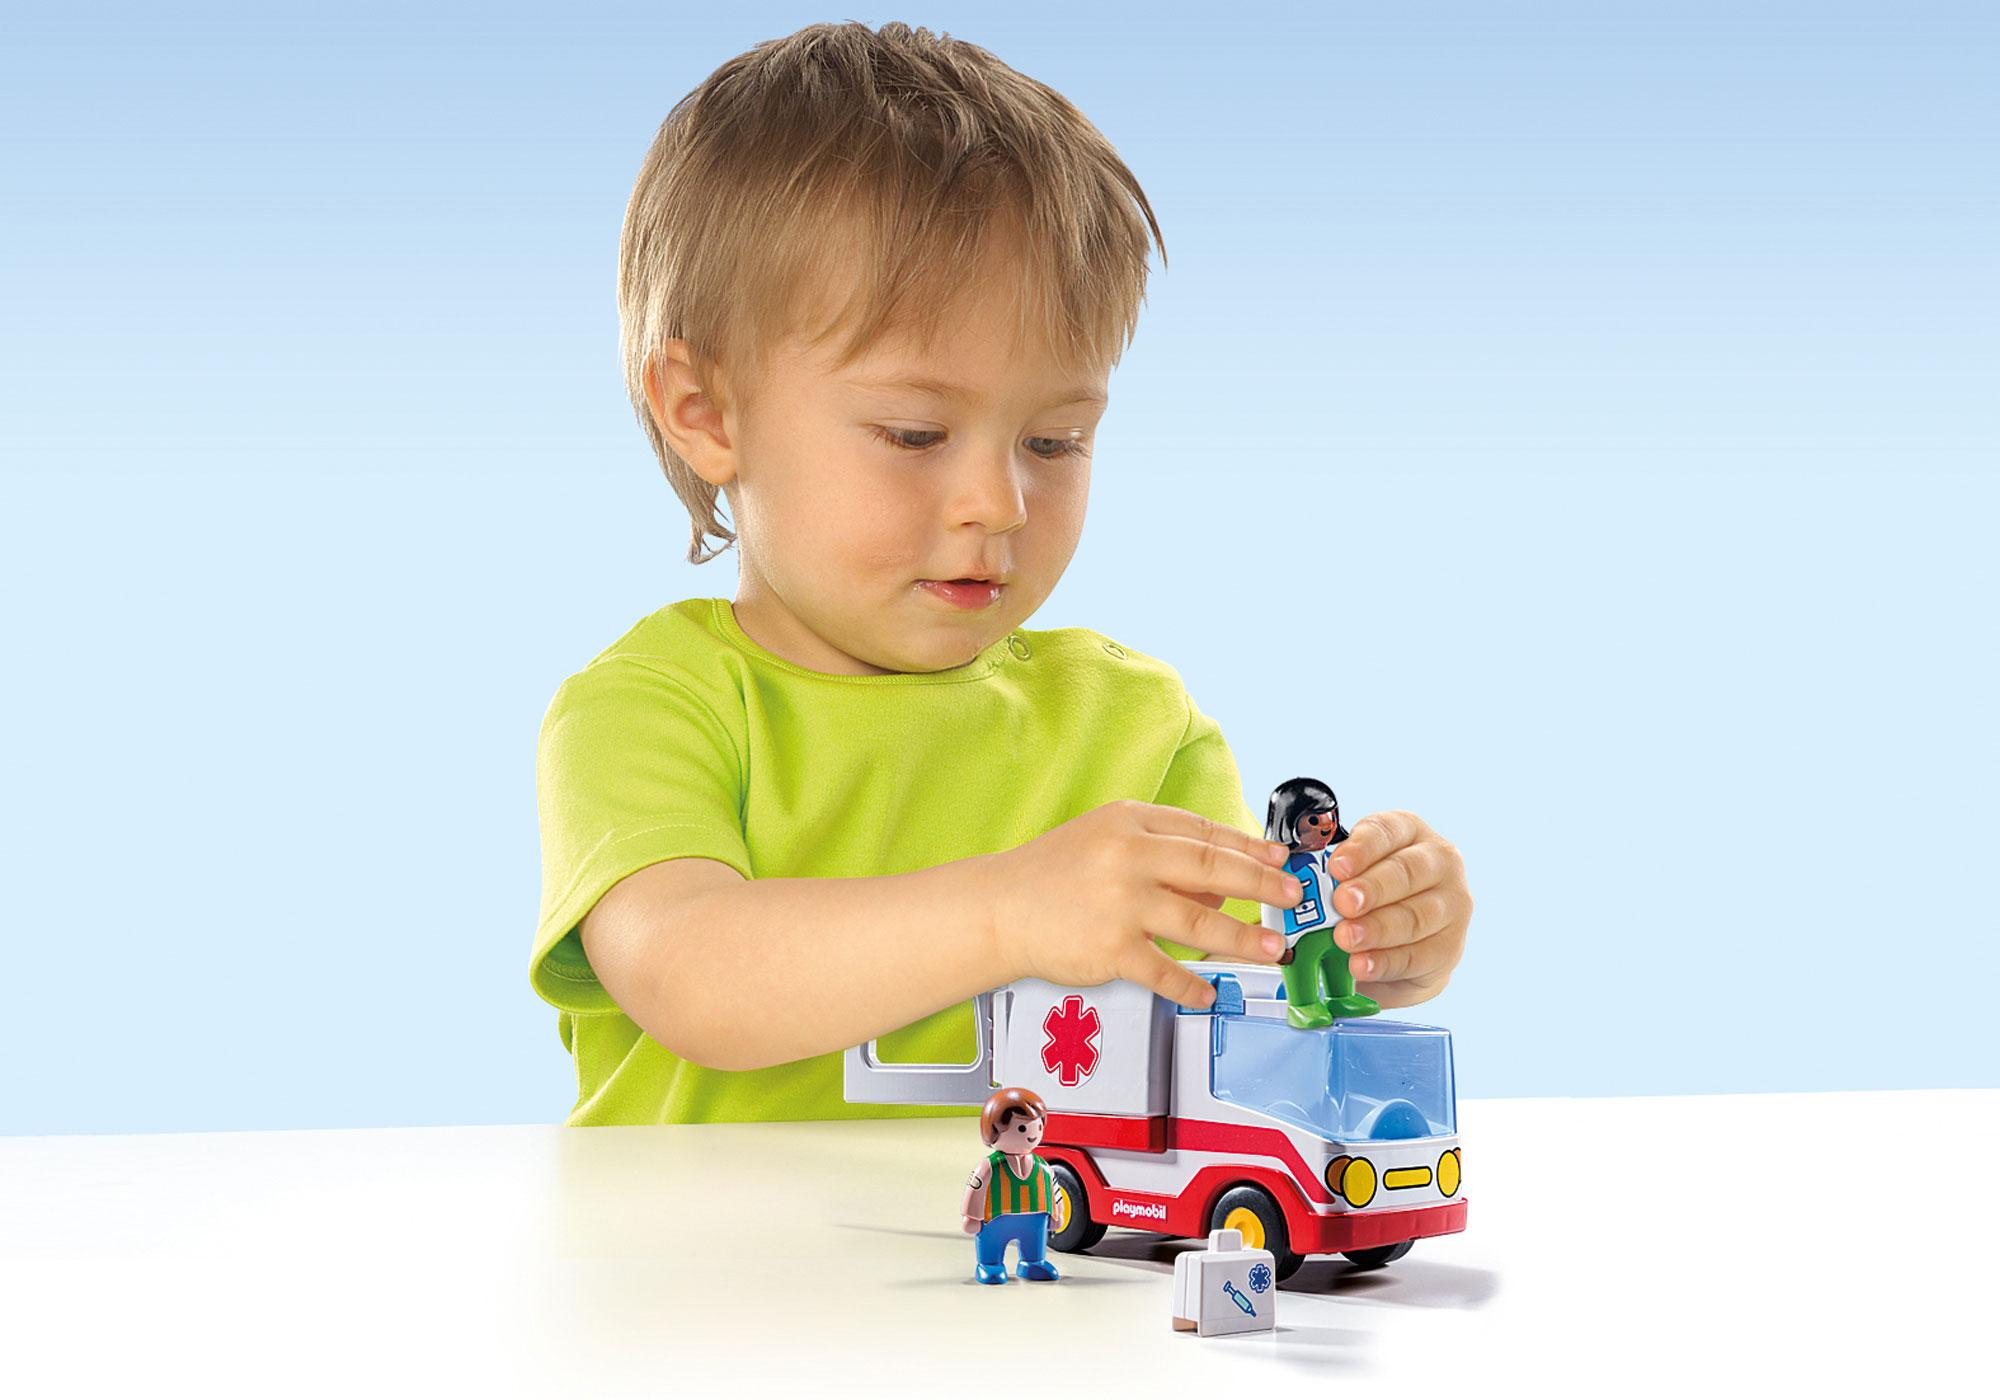 http://media.playmobil.com/i/playmobil/9122_product_extra1/1.2.3 Ambulancia